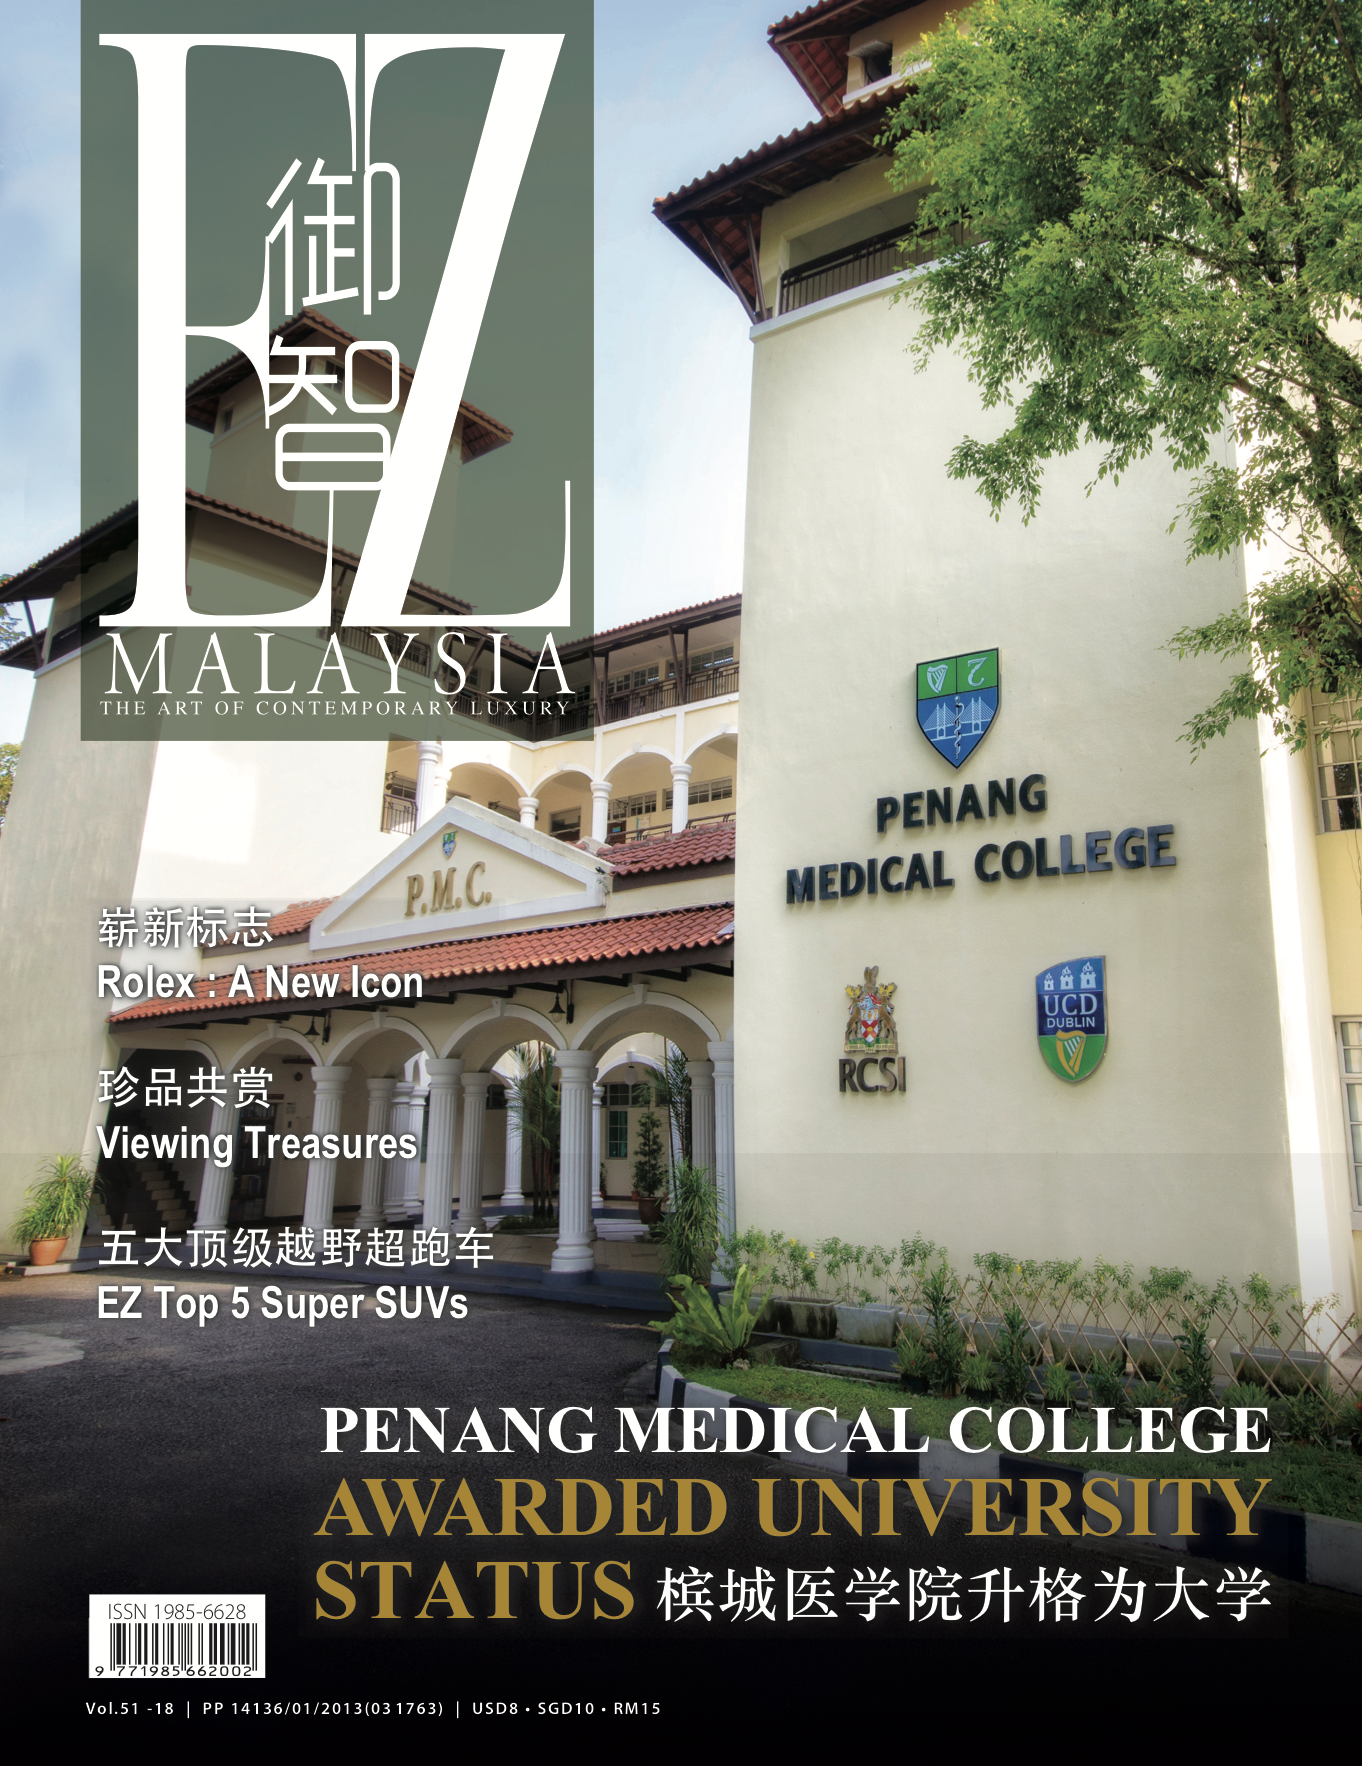 Penang Medical College.jpg